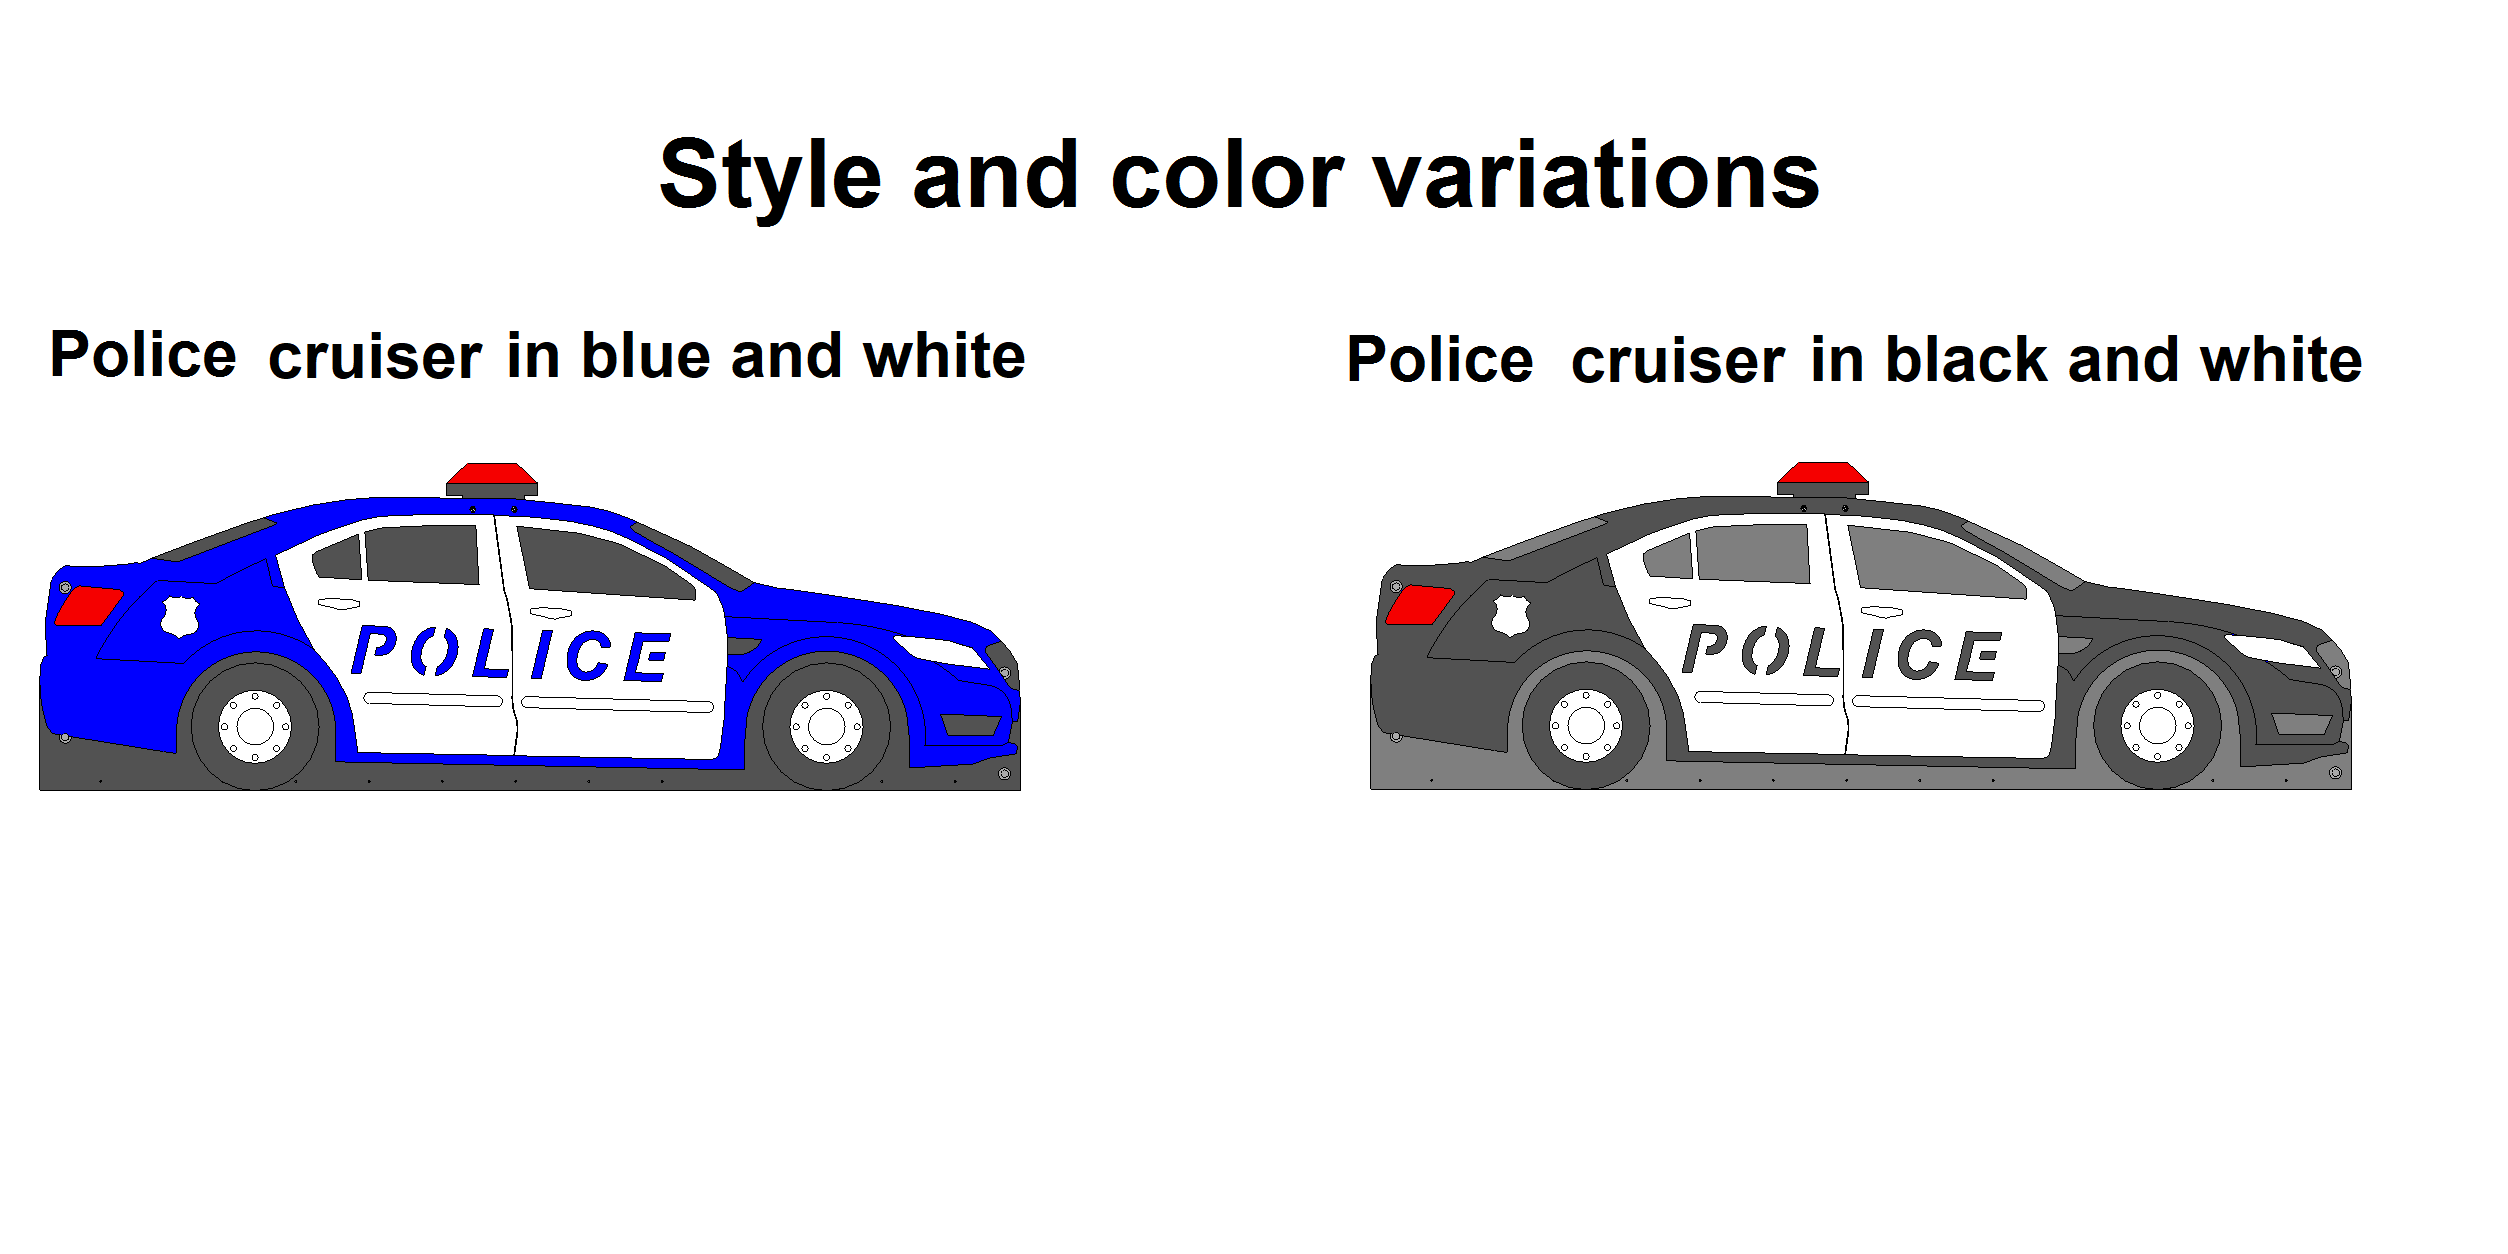 police cruiser bed options